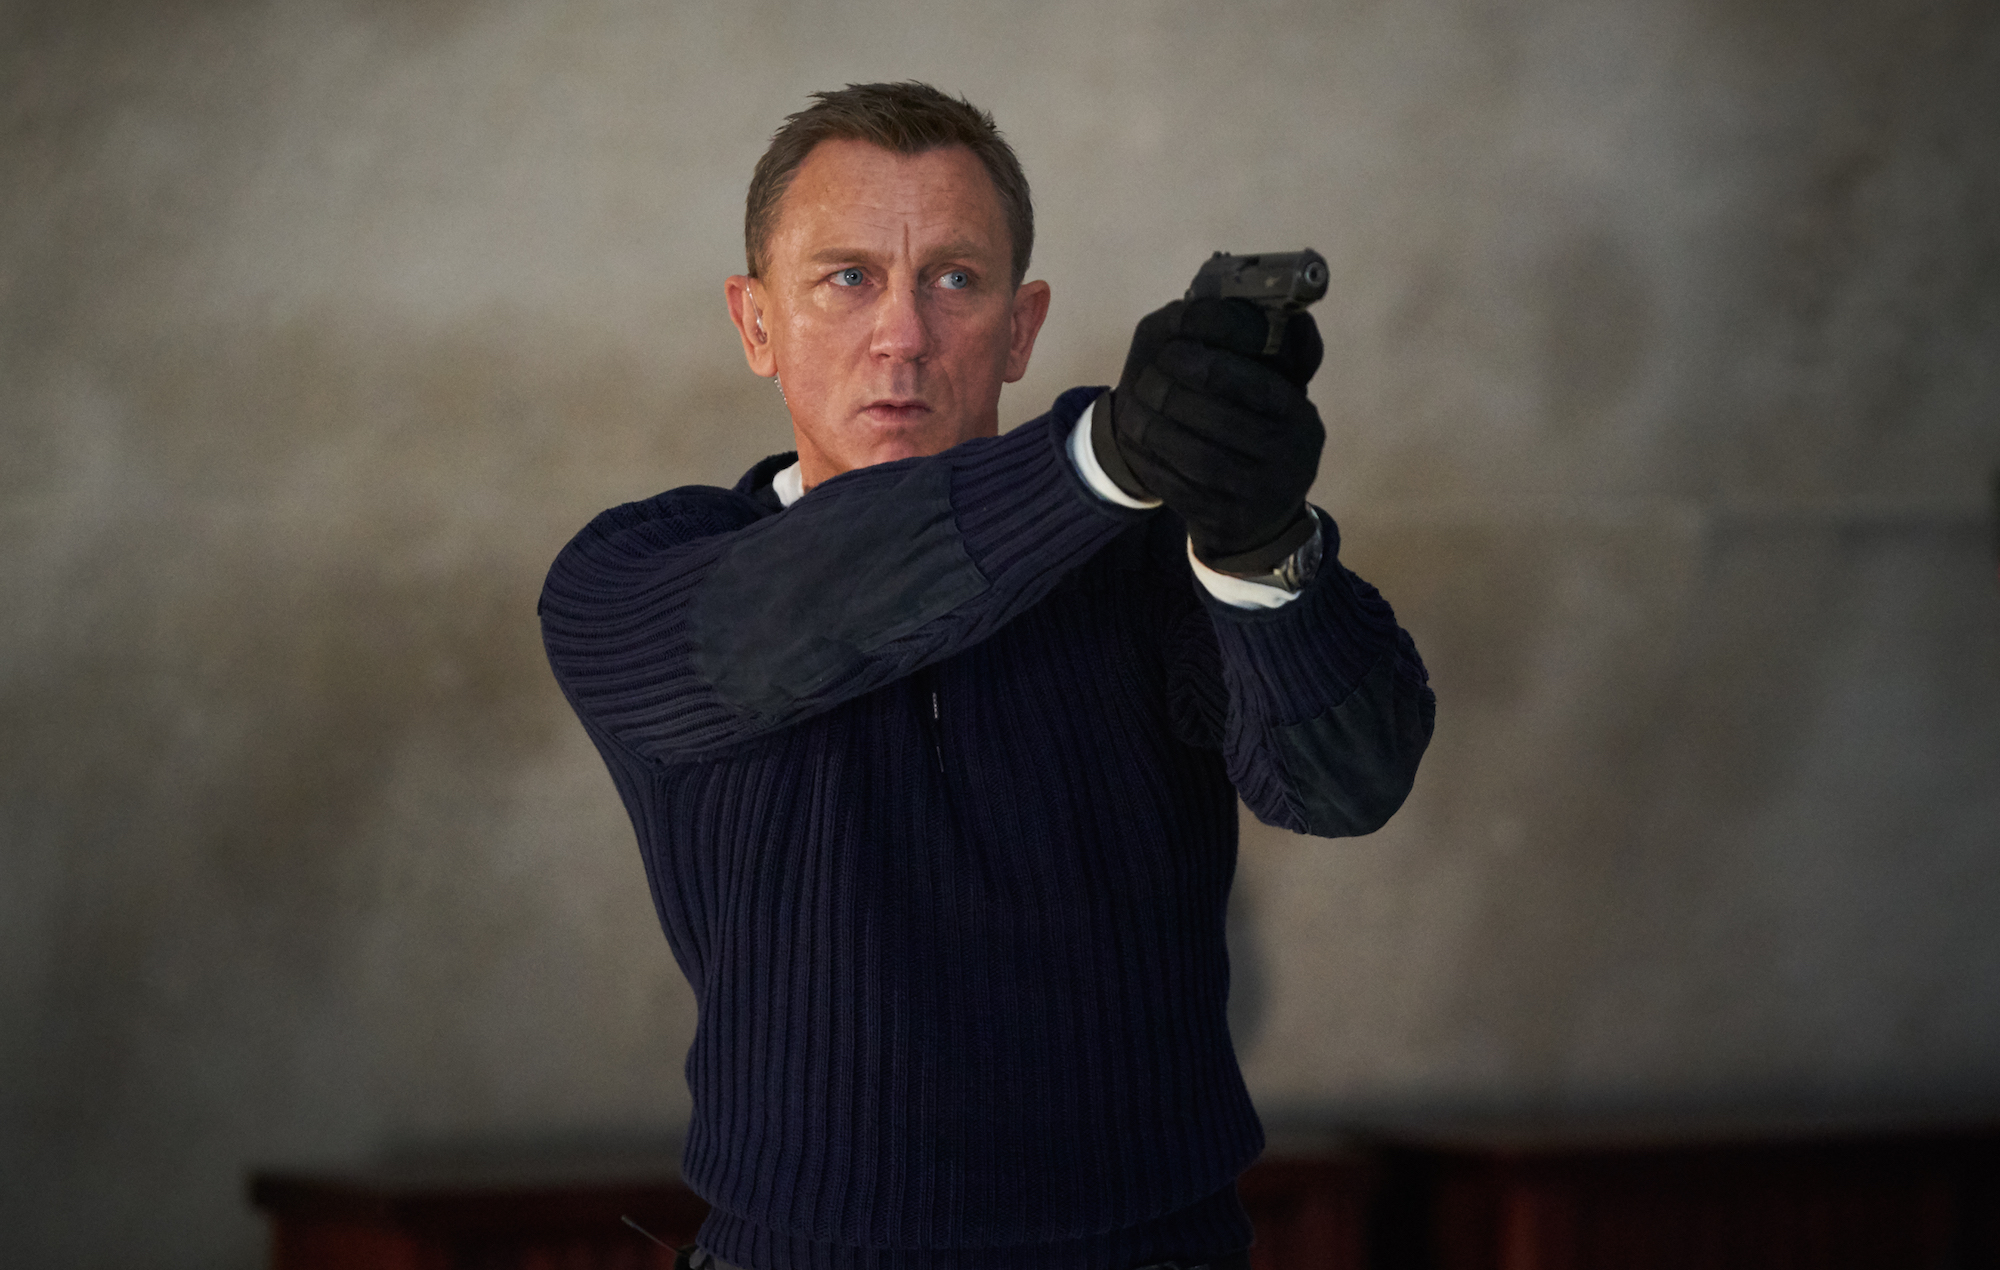 James Bond: producers aren't looking for Daniel Craig replacement yet